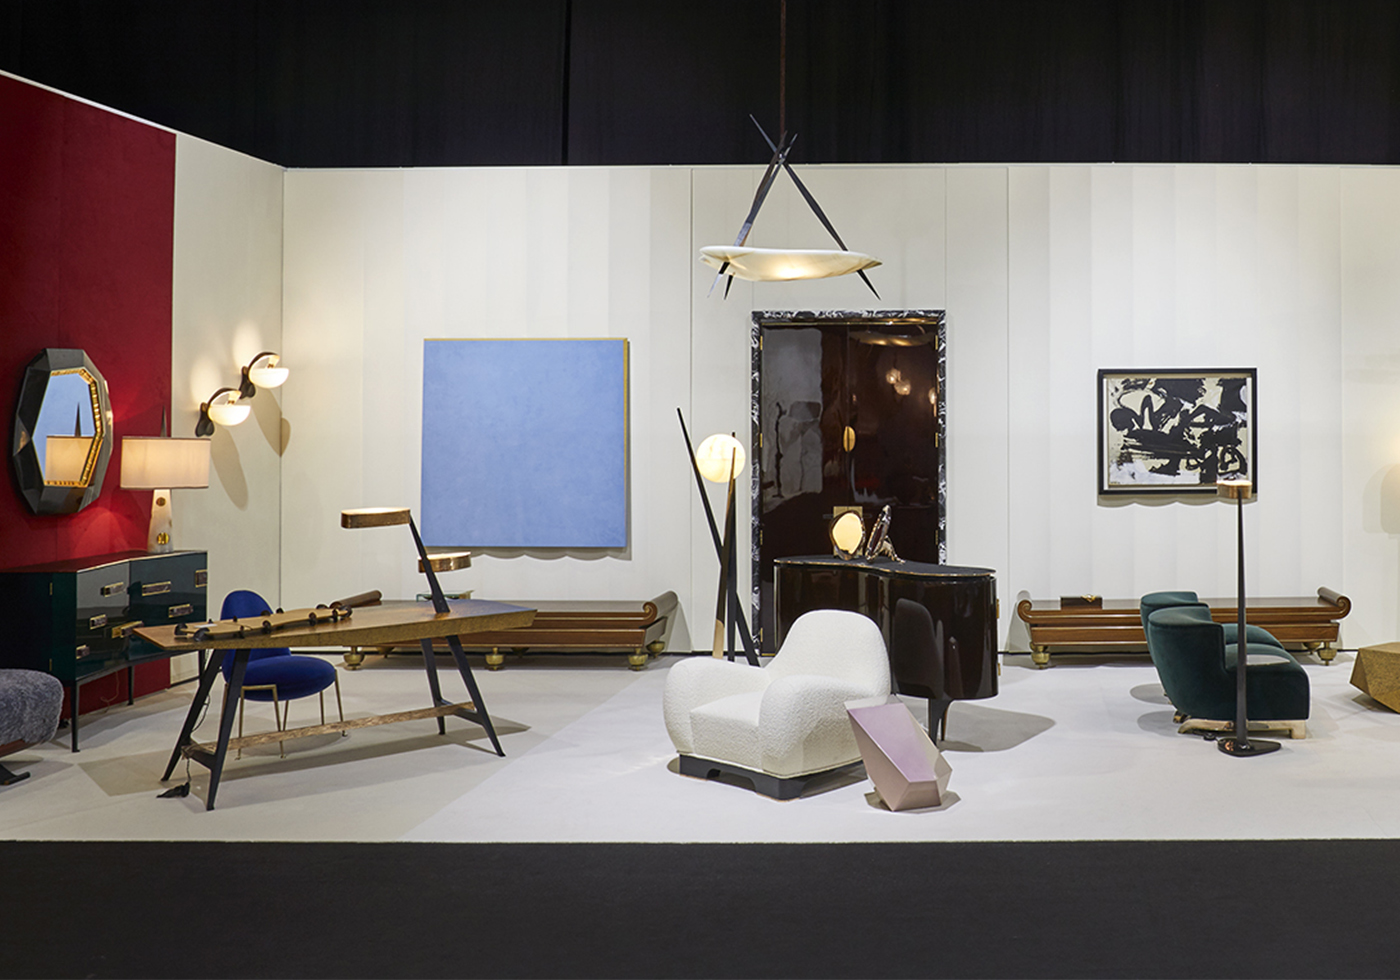 Everything You Need to Know about Design in PAD 2019 - Salvagni PAD Geneve Everything You Need to Know about Design in PAD Geneve 2019 Everything You Need to Know about Design in PAD 2019 Salvagni